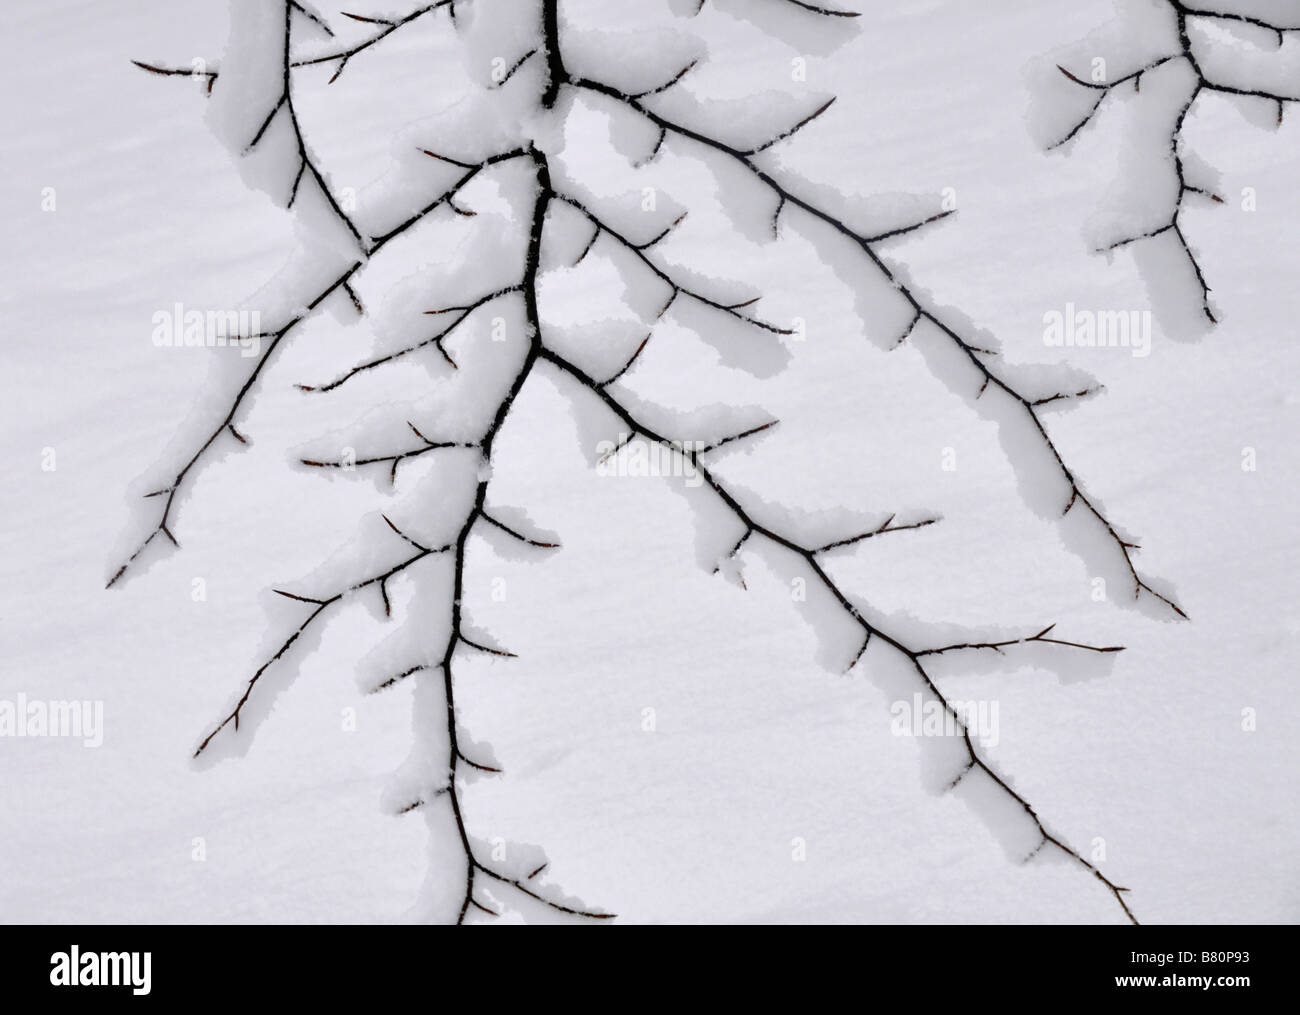 Tree branches in snow Bow Brickhill England - Stock Image